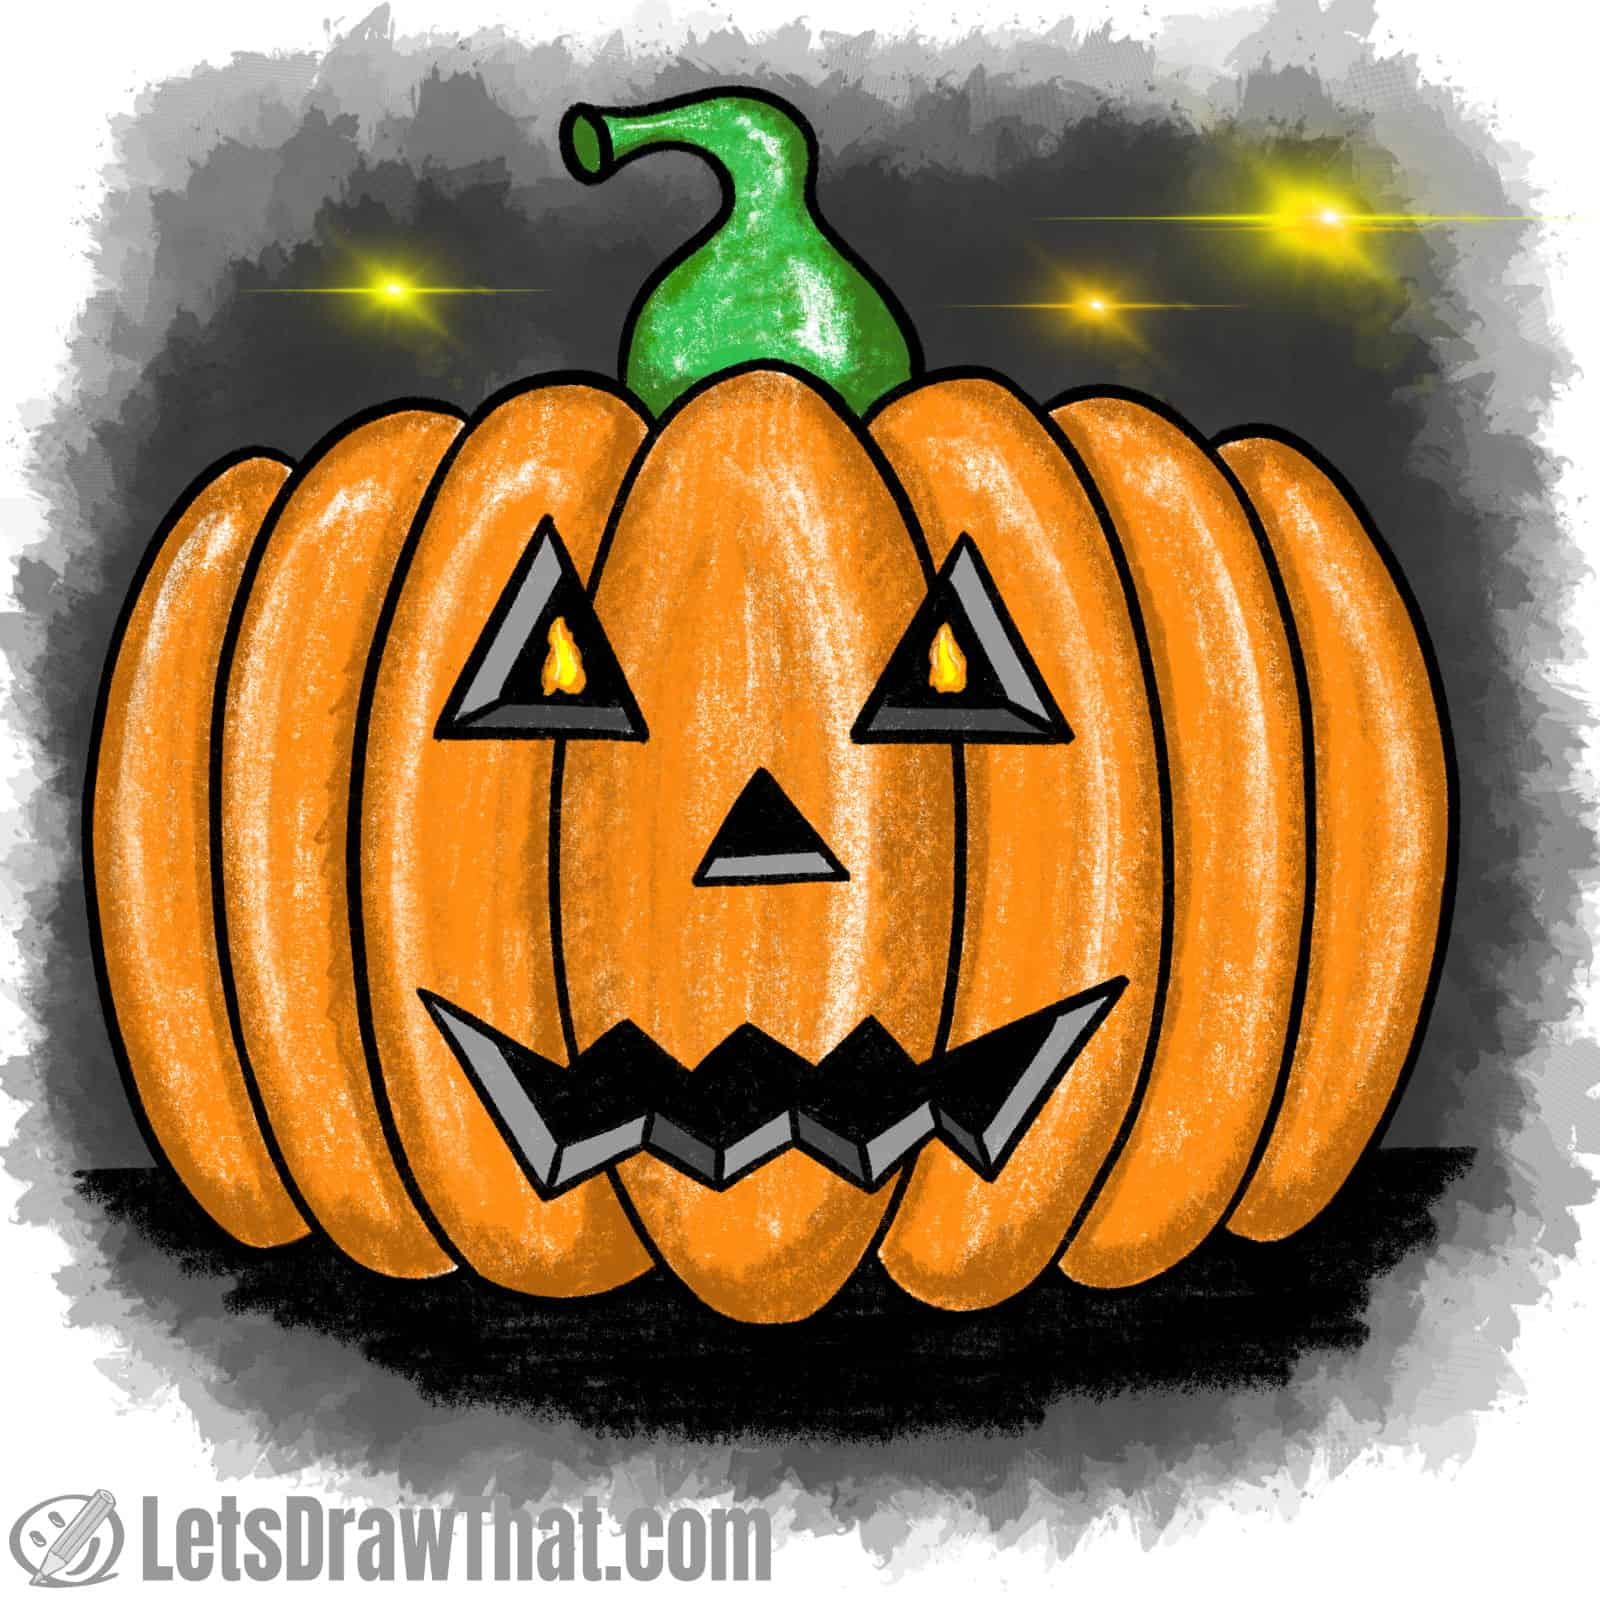 Drawing classic pumpkin face: finished drawing coloured-in